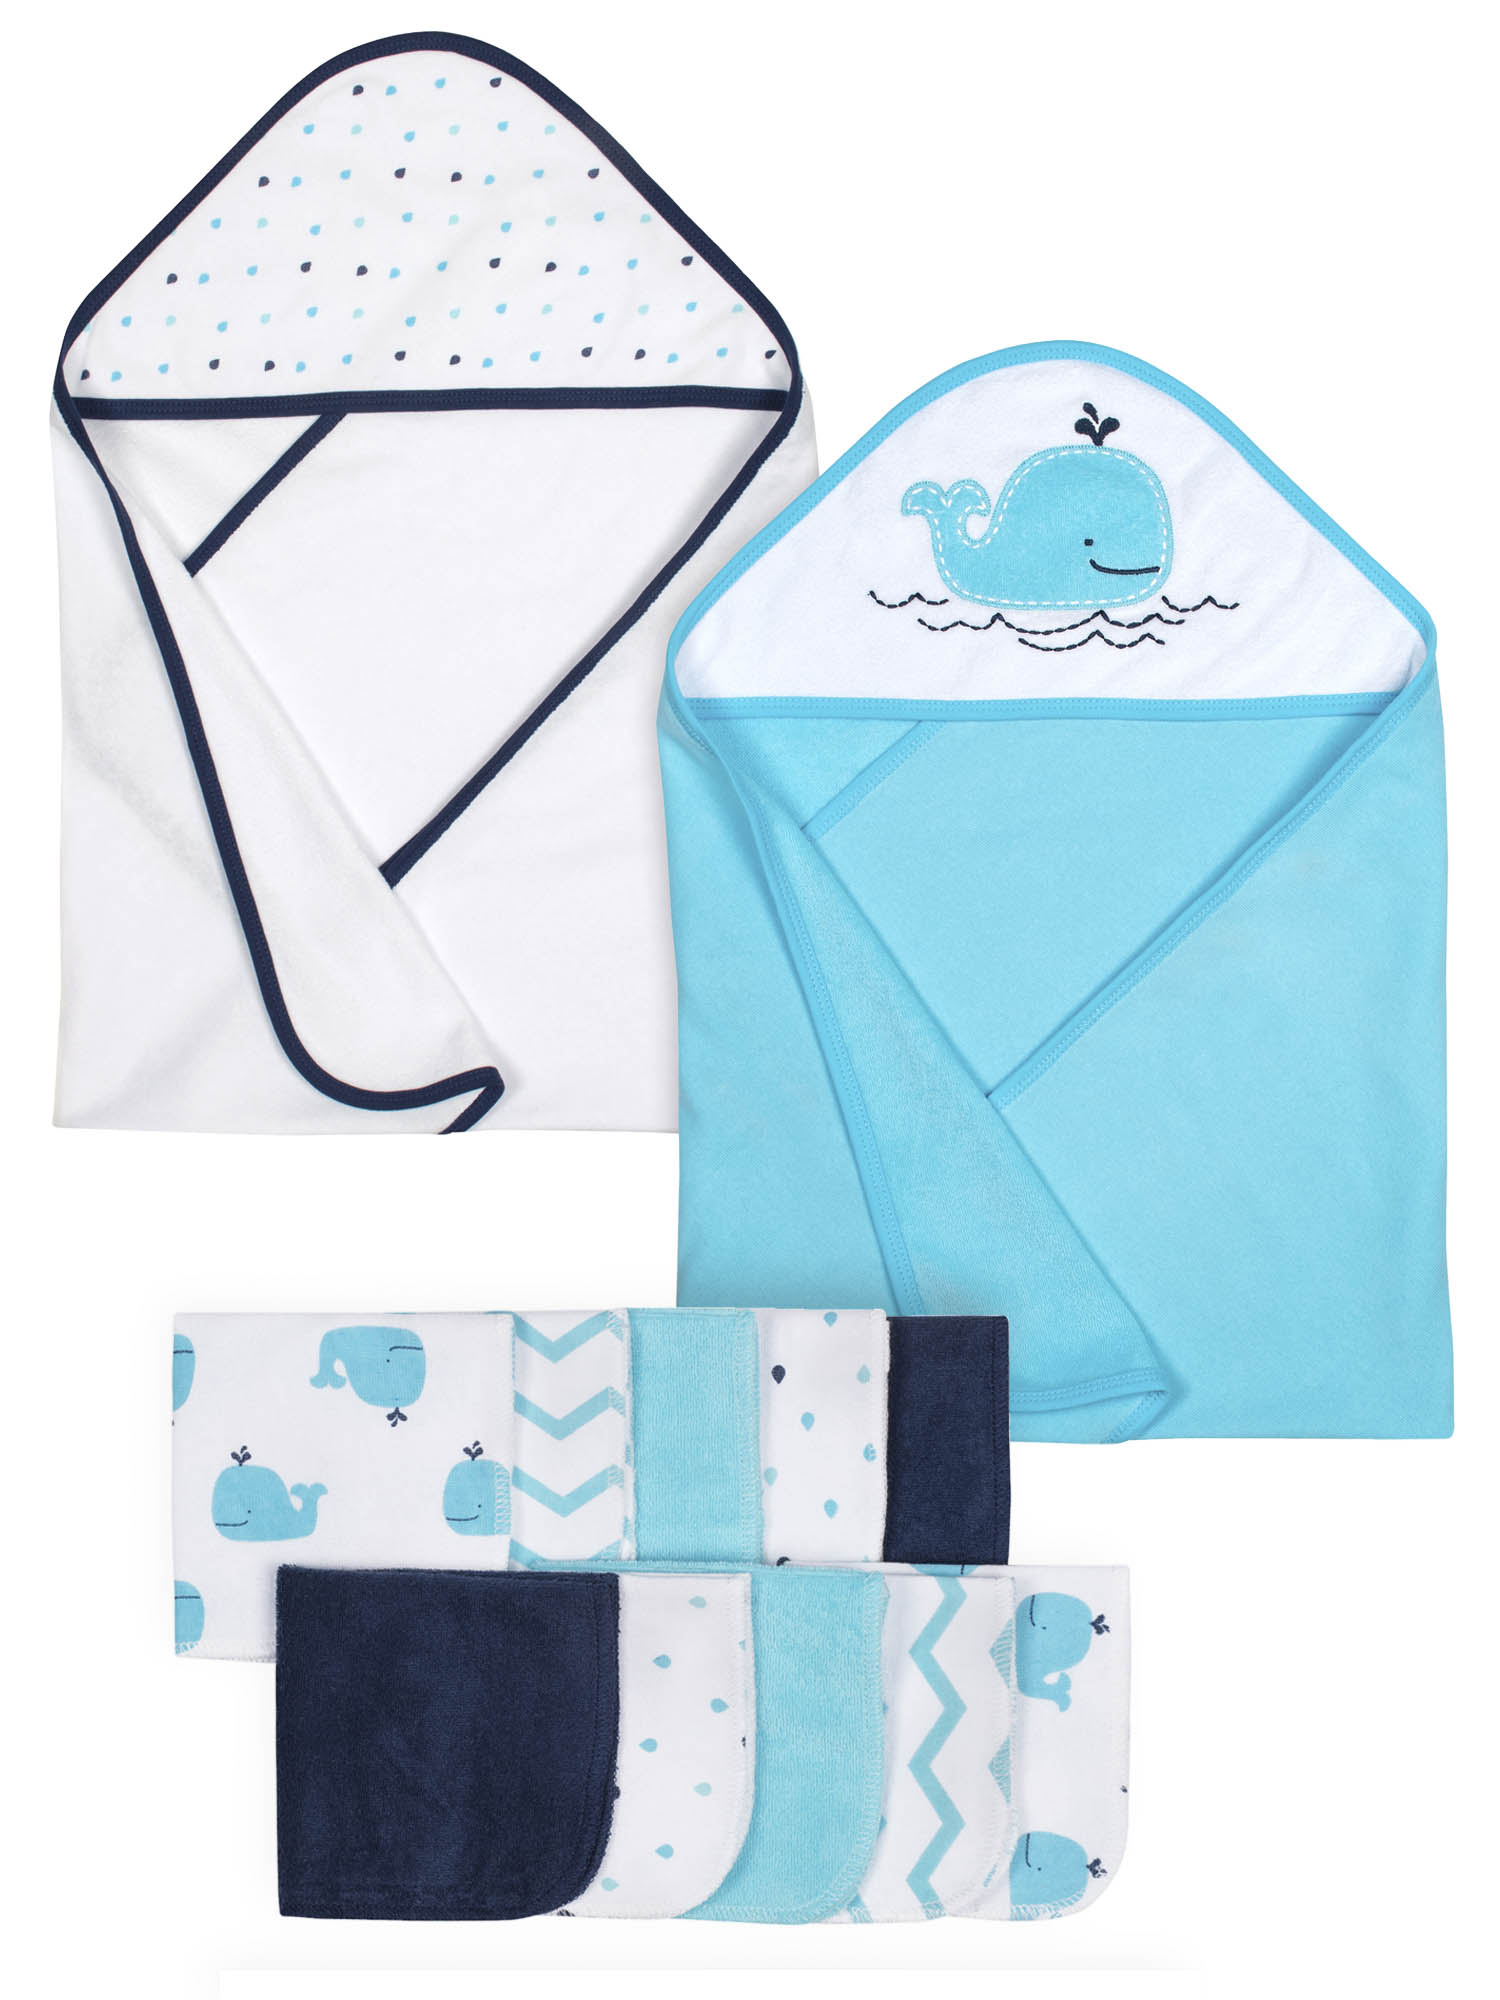 Gerber Baby Boy Hooded Towels & Washcloth Set, 12pc by Gerber